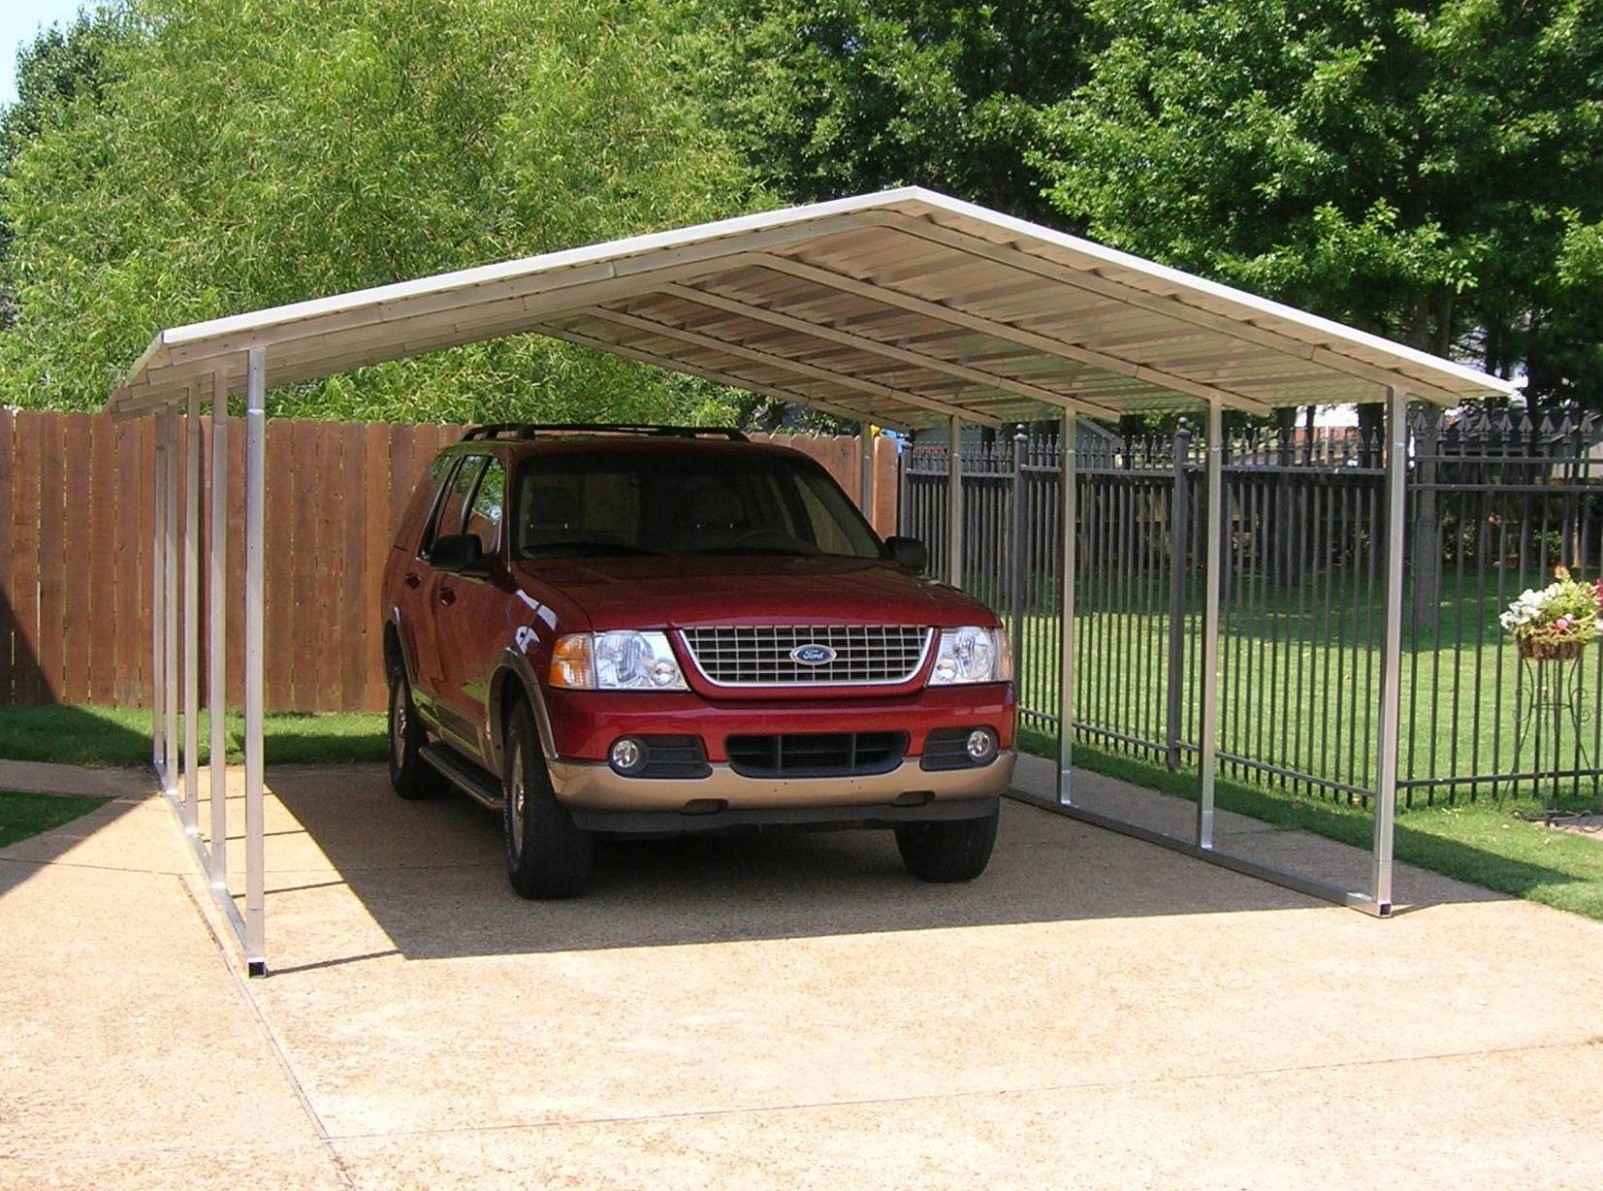 How To Leave Metal Shelter Kits Without Being Noticed | metal shelter kits